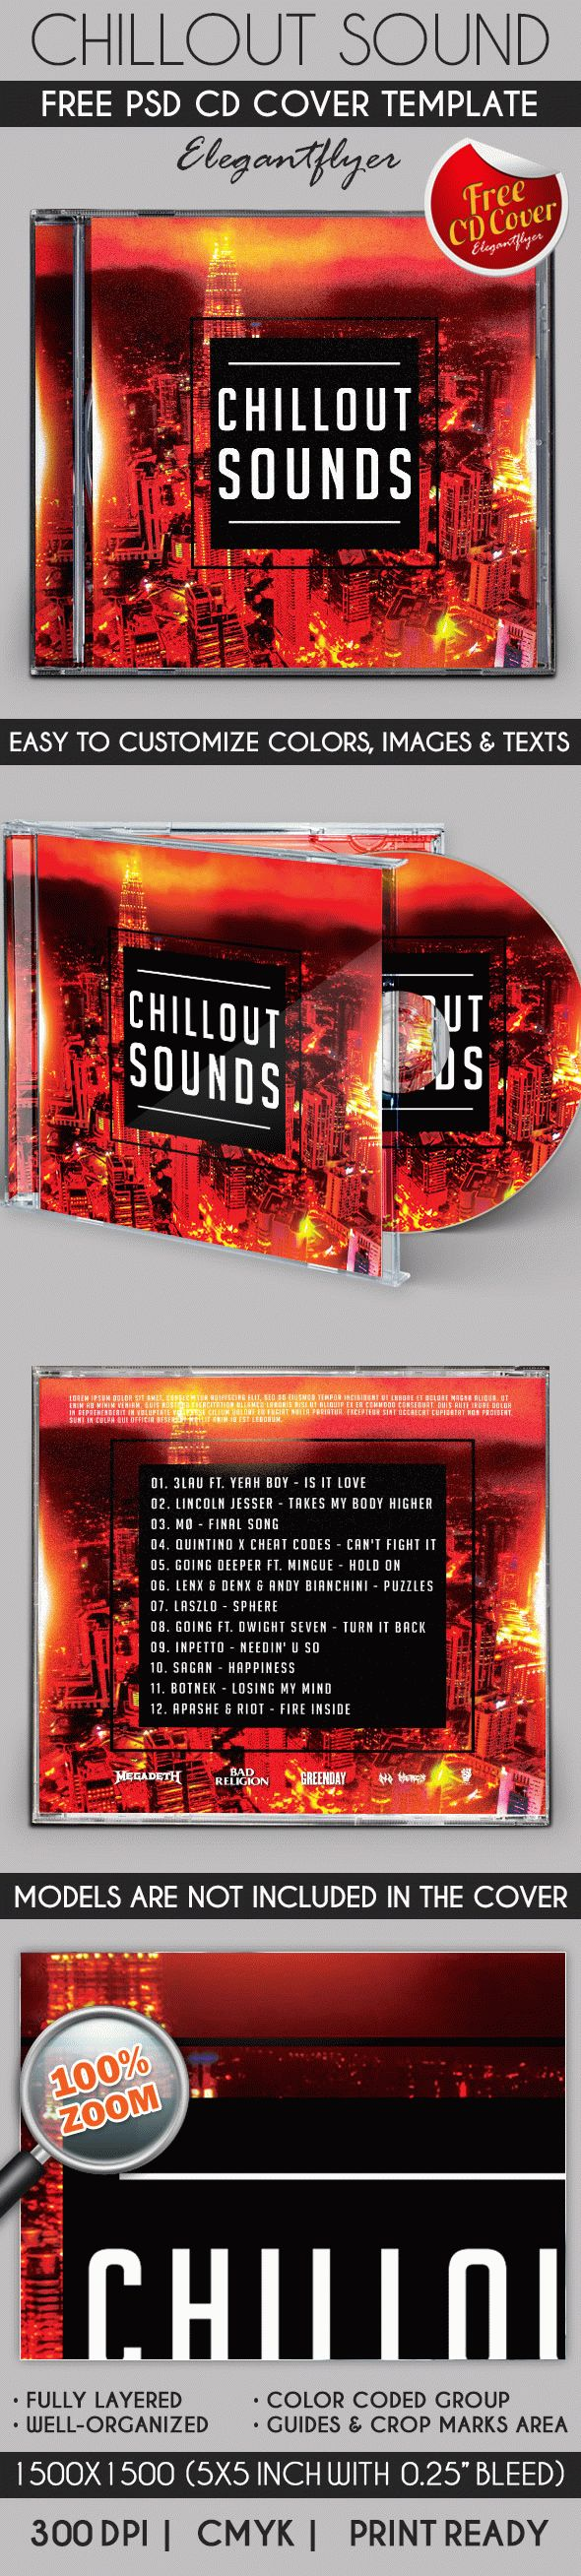 Chillout Sound – Free CD Cover PSD Template